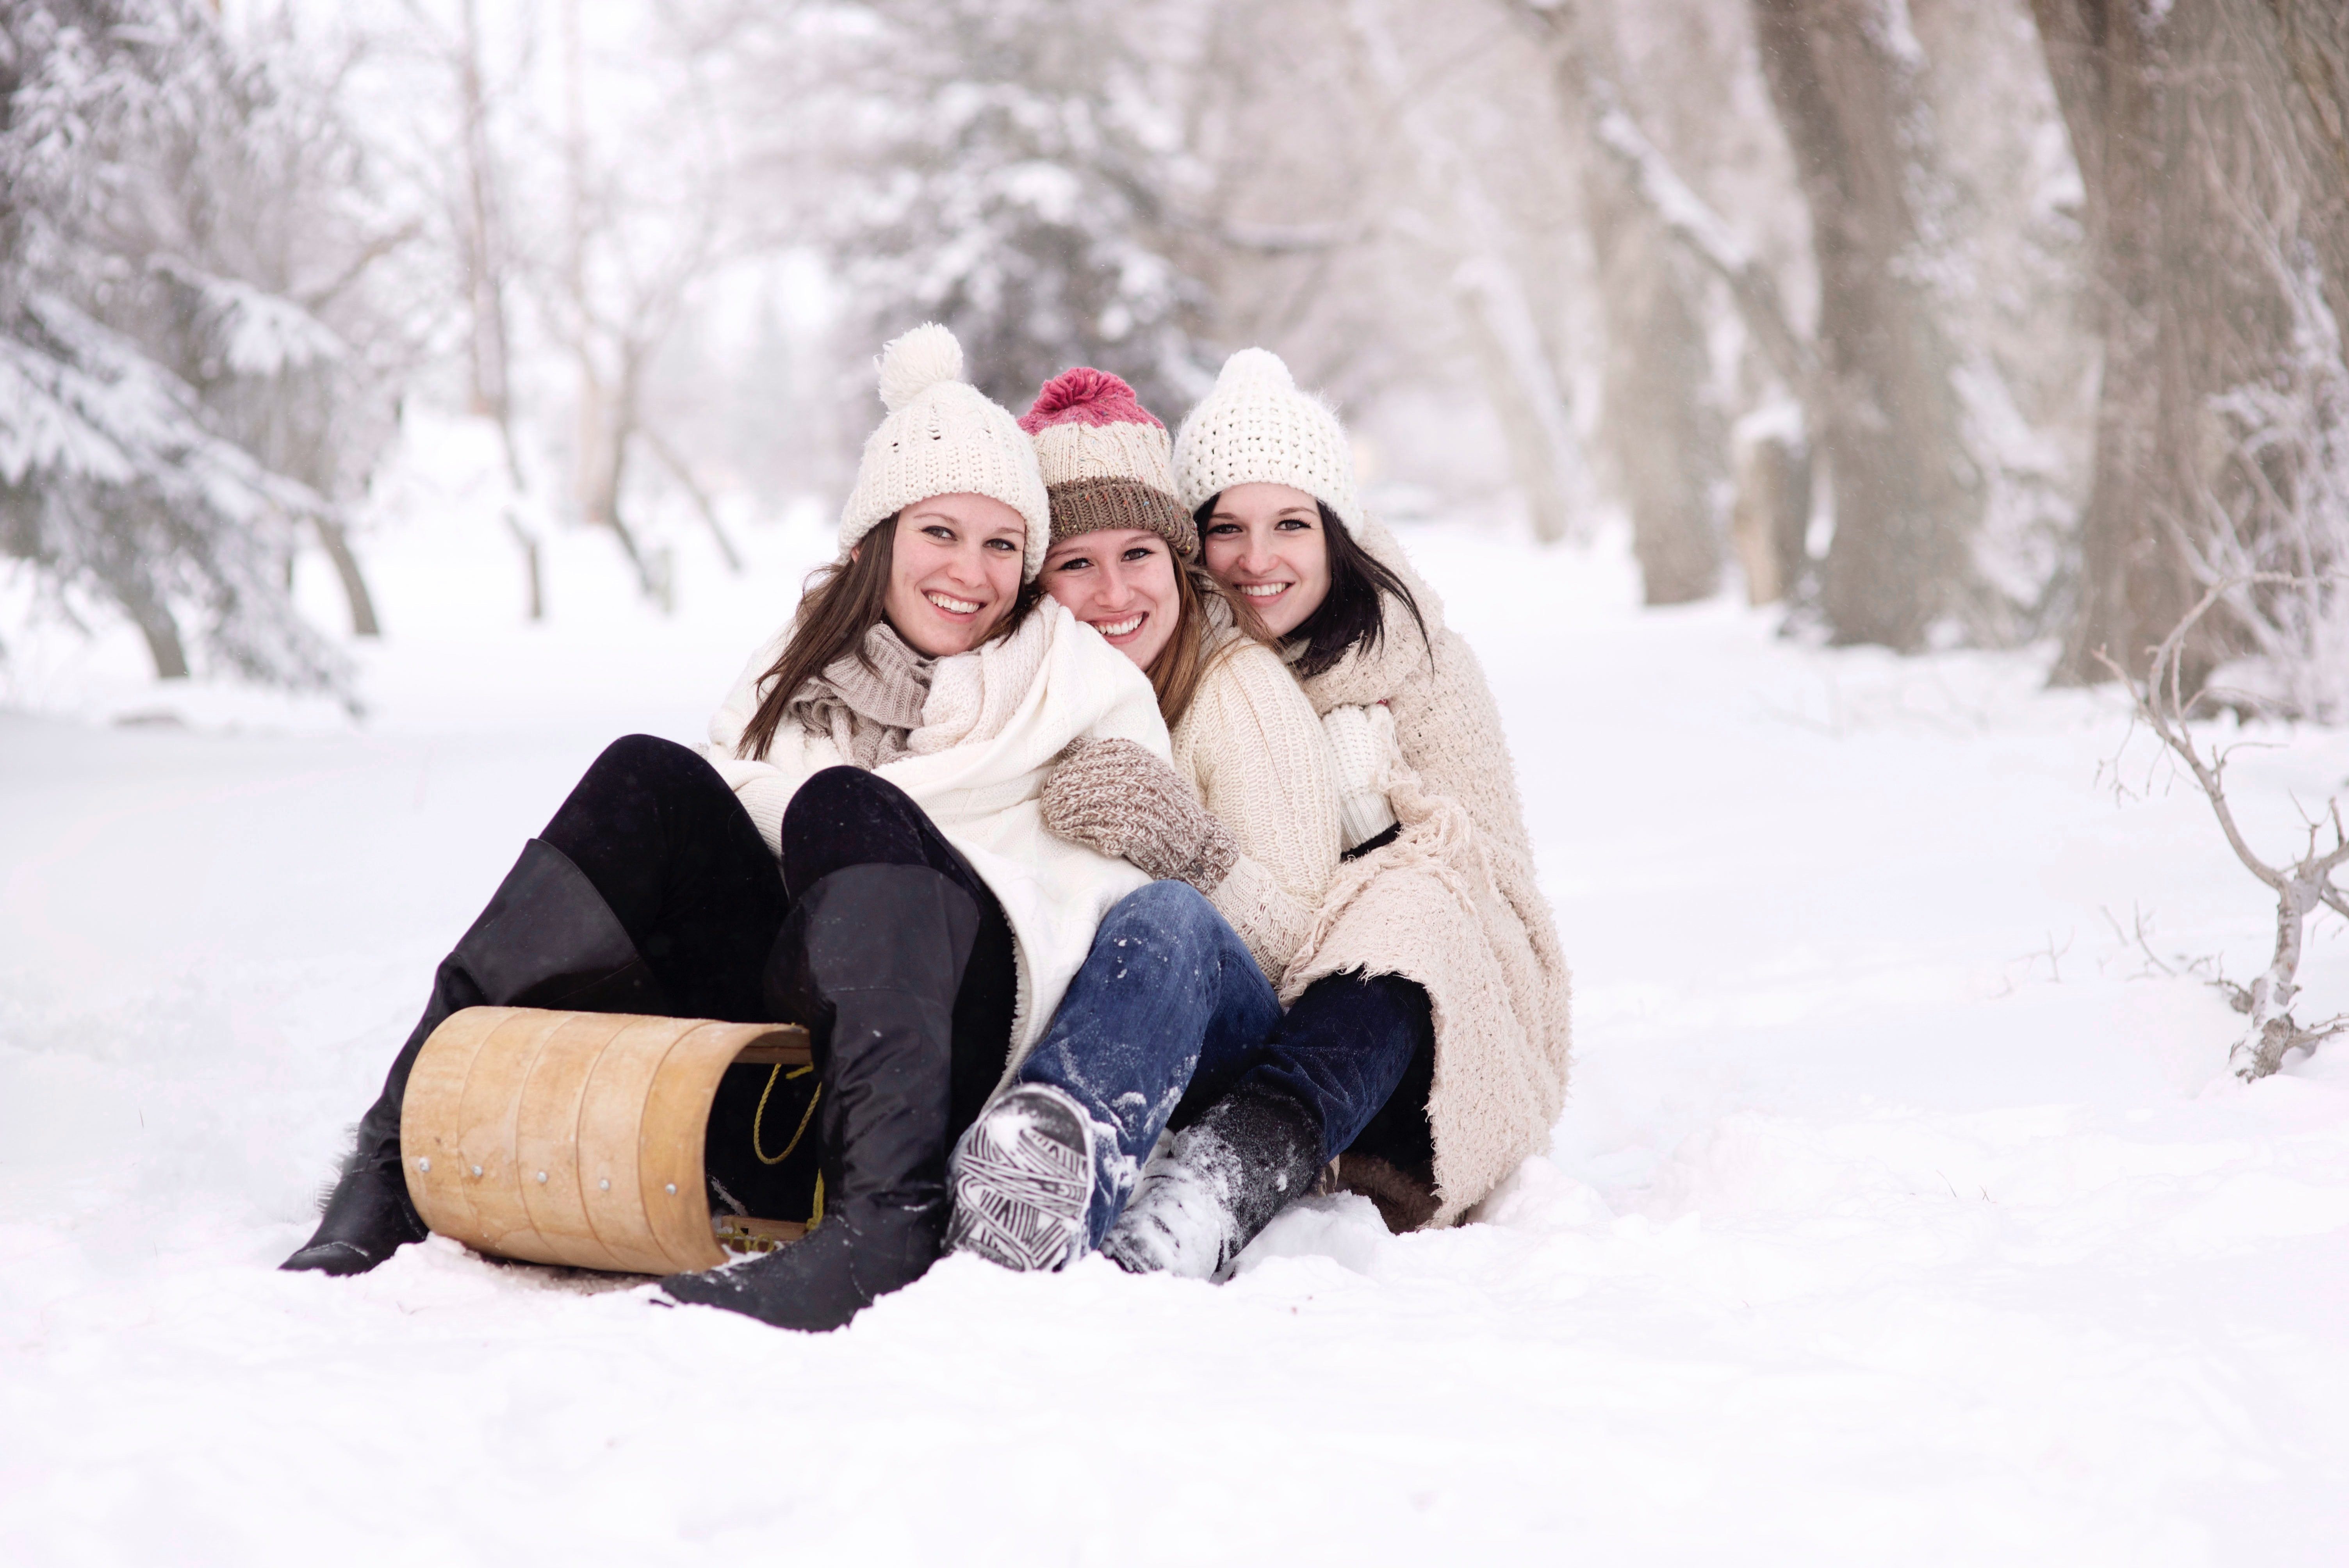 women-girls-snow-toboggan-32192